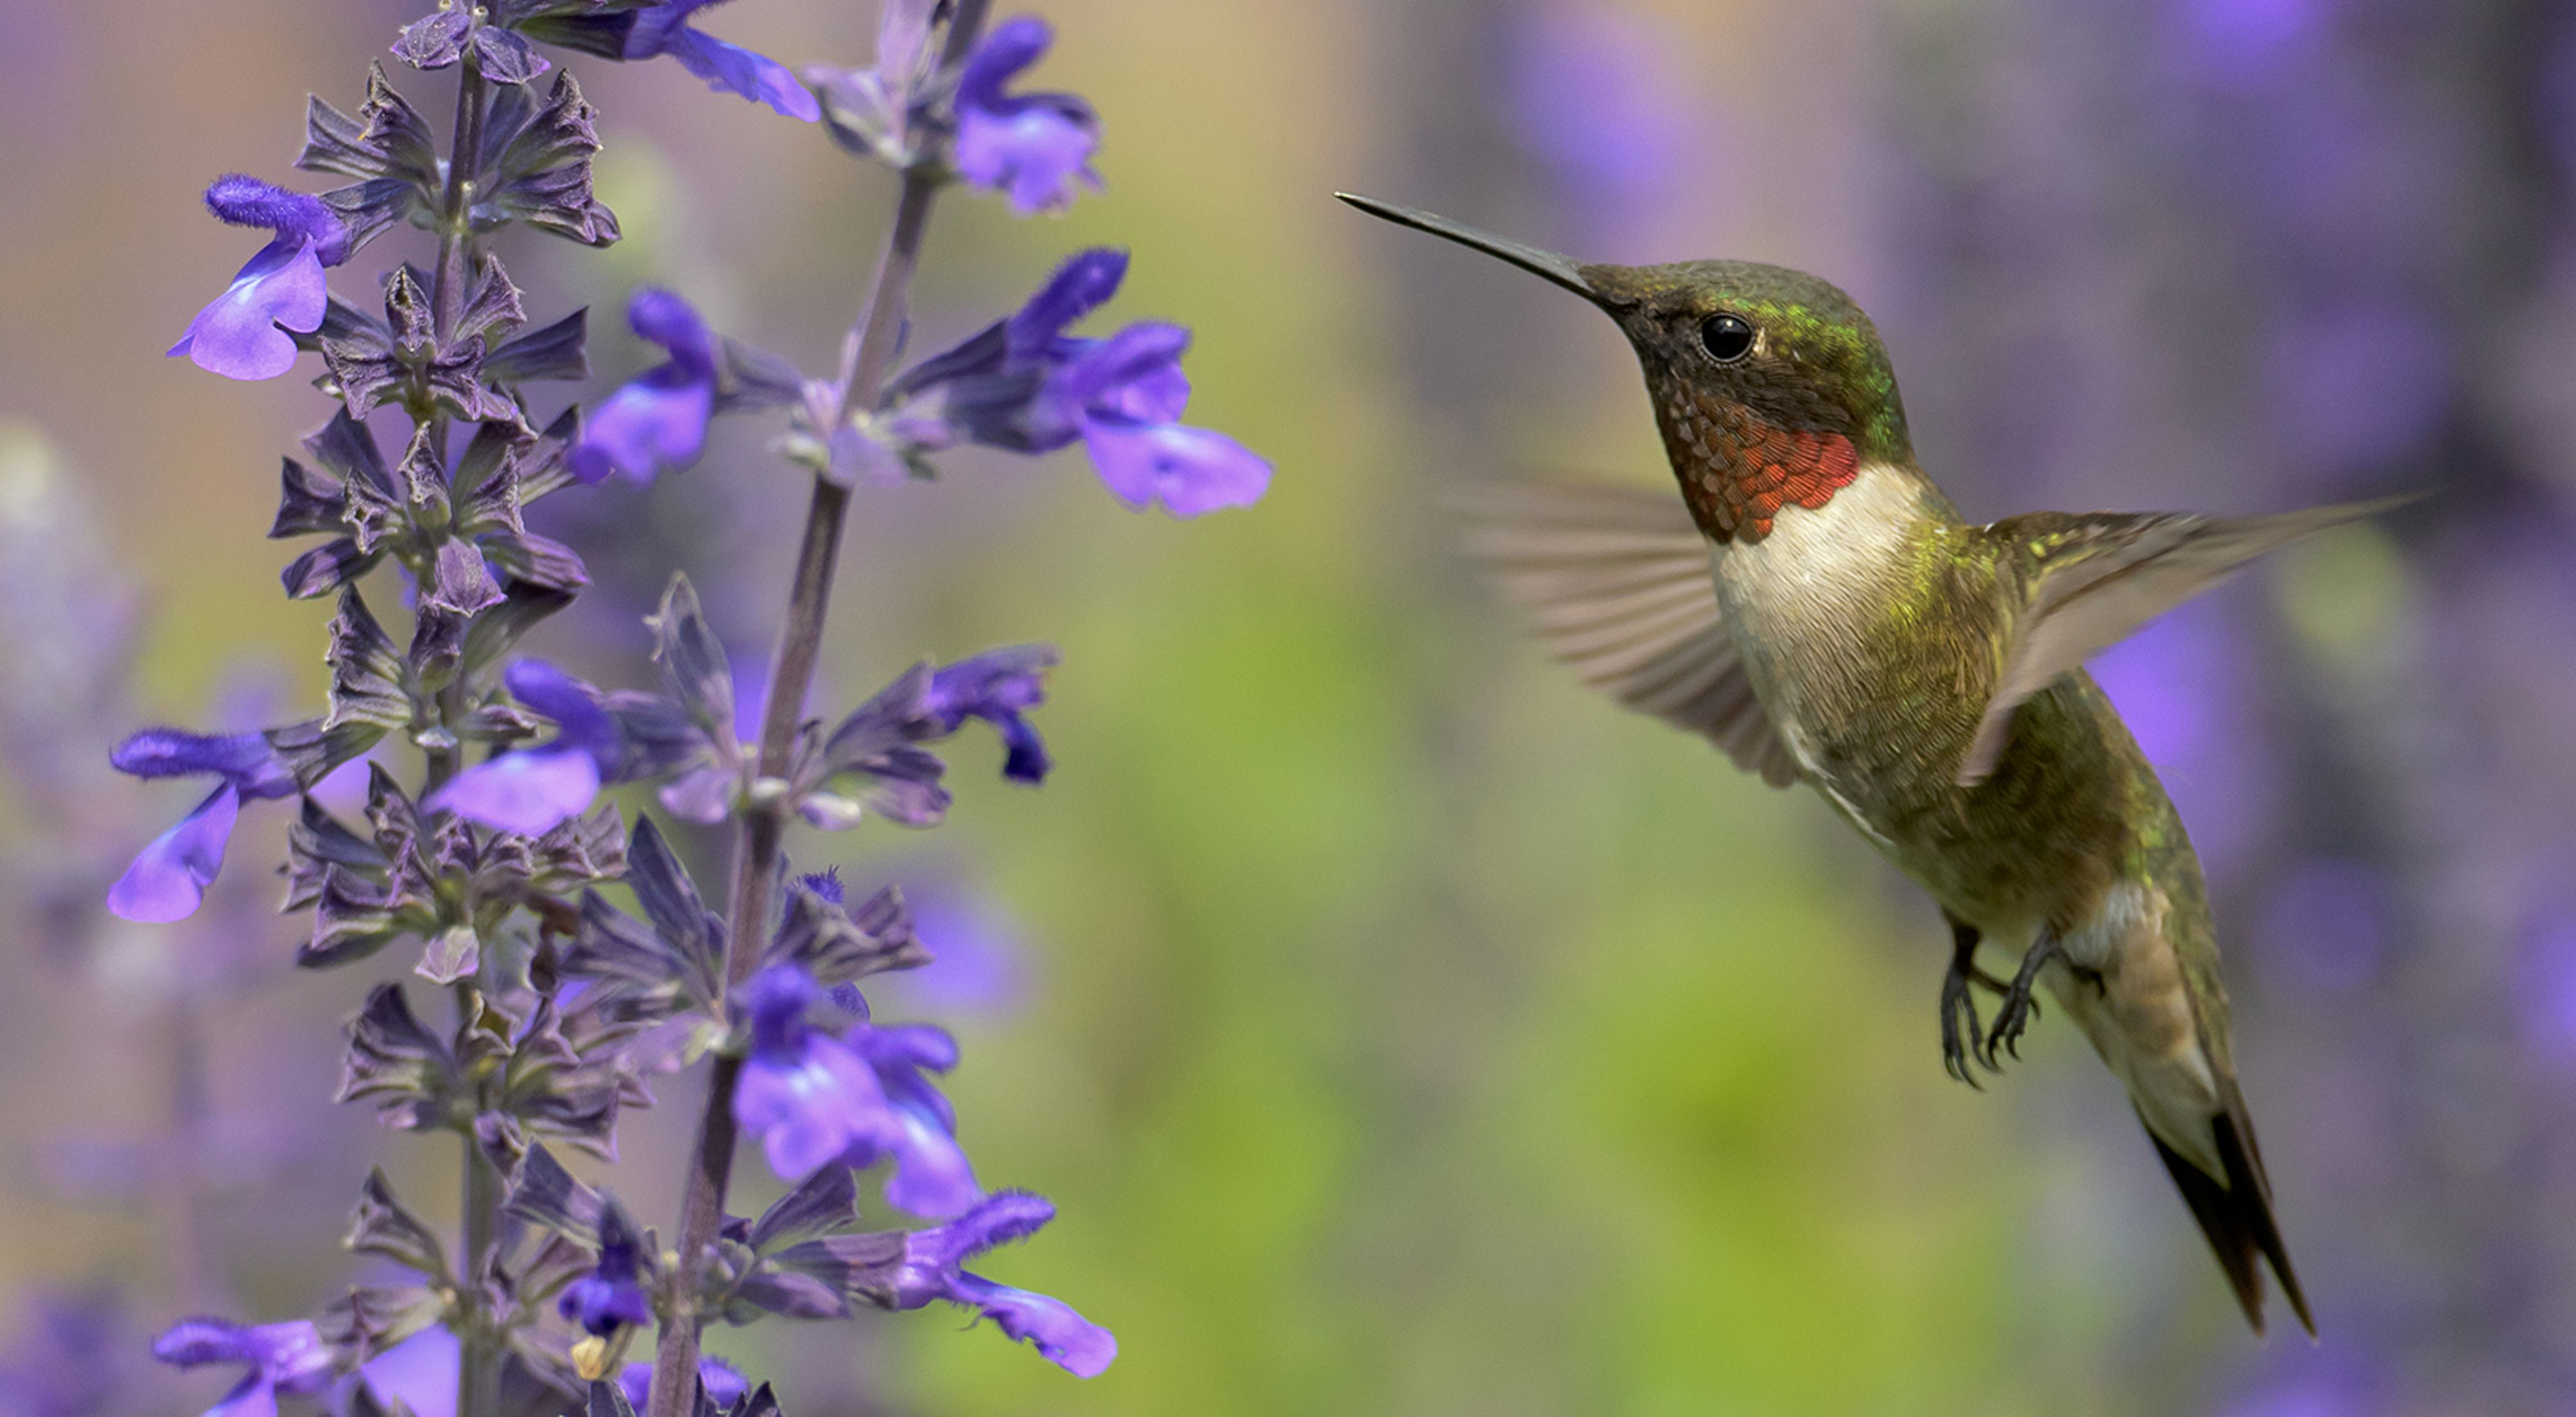 A green hummingbird with a white breast and red, iridescent throat visits a purple flower.